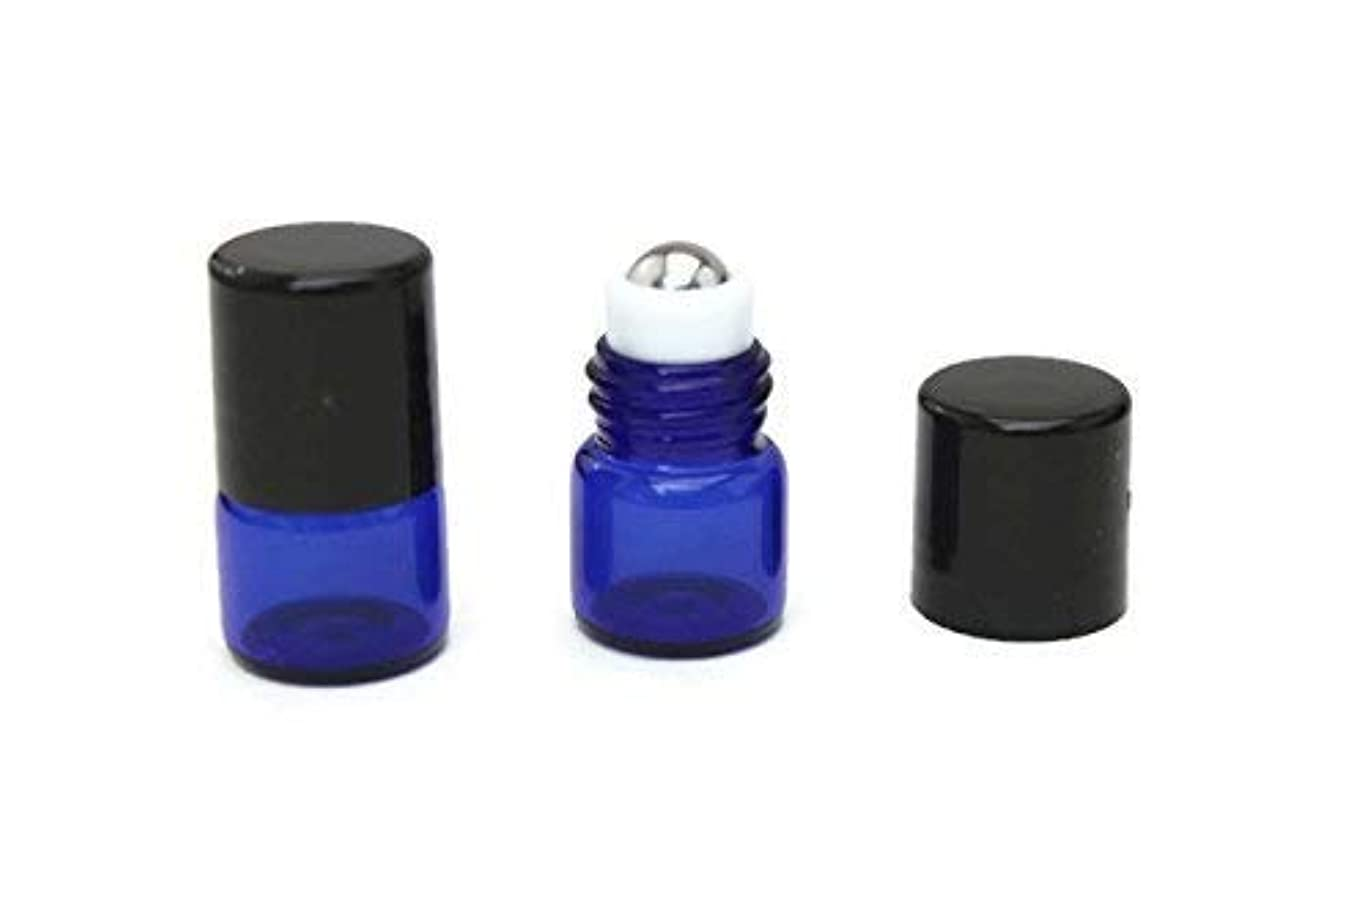 チューインガムその後のEssential Oil Roller Bottle 72-1 ml (1/4 Dram) COBALT BLUE Glass Micro Mini Roll-on Glass Bottles with Stainless...